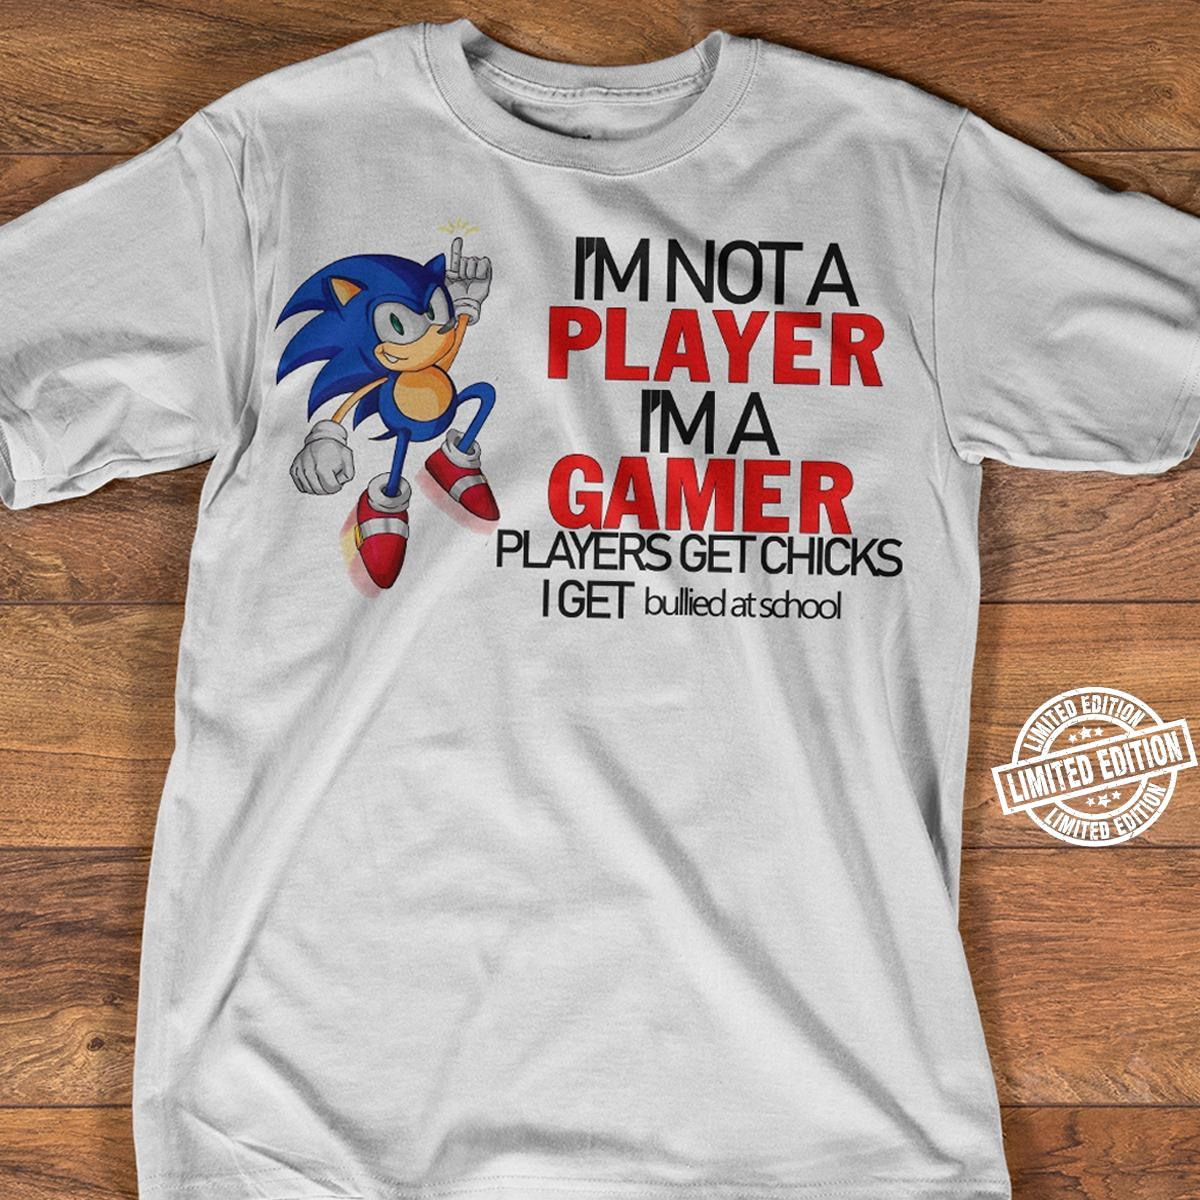 I'm not a player i'm a gamer players get chicks i get bullied at school shirt